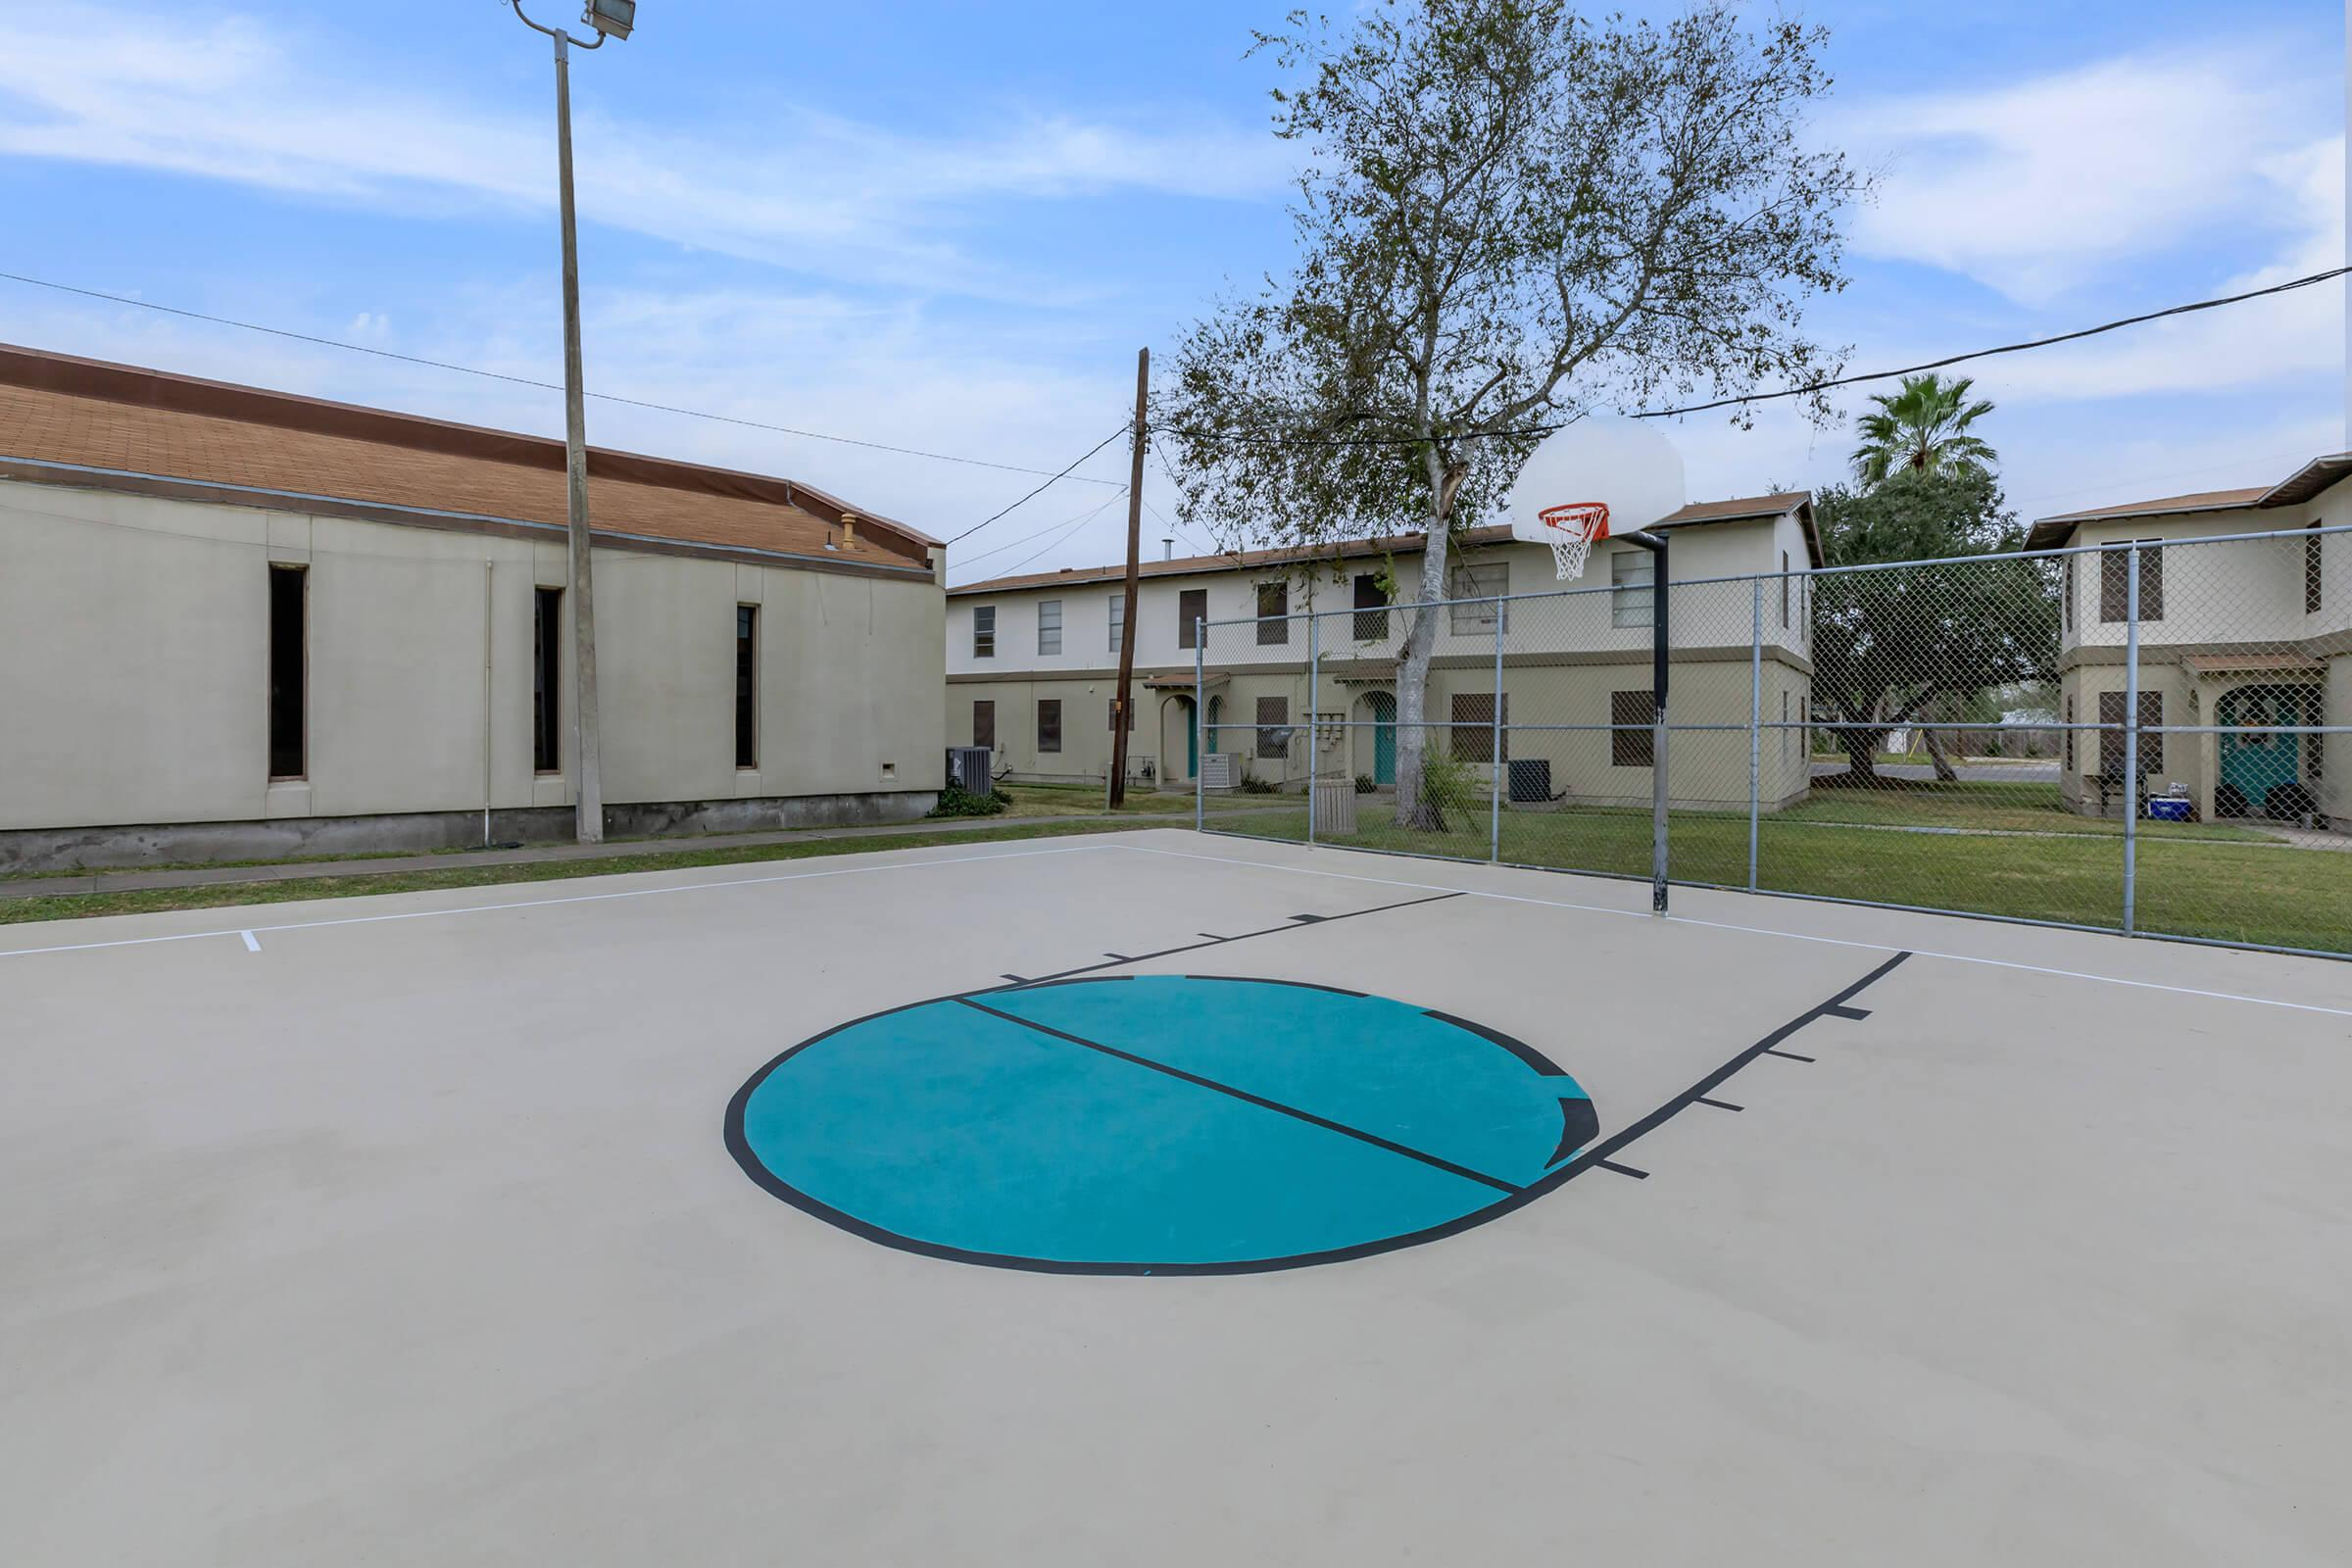 a house that has a racket in front of a building